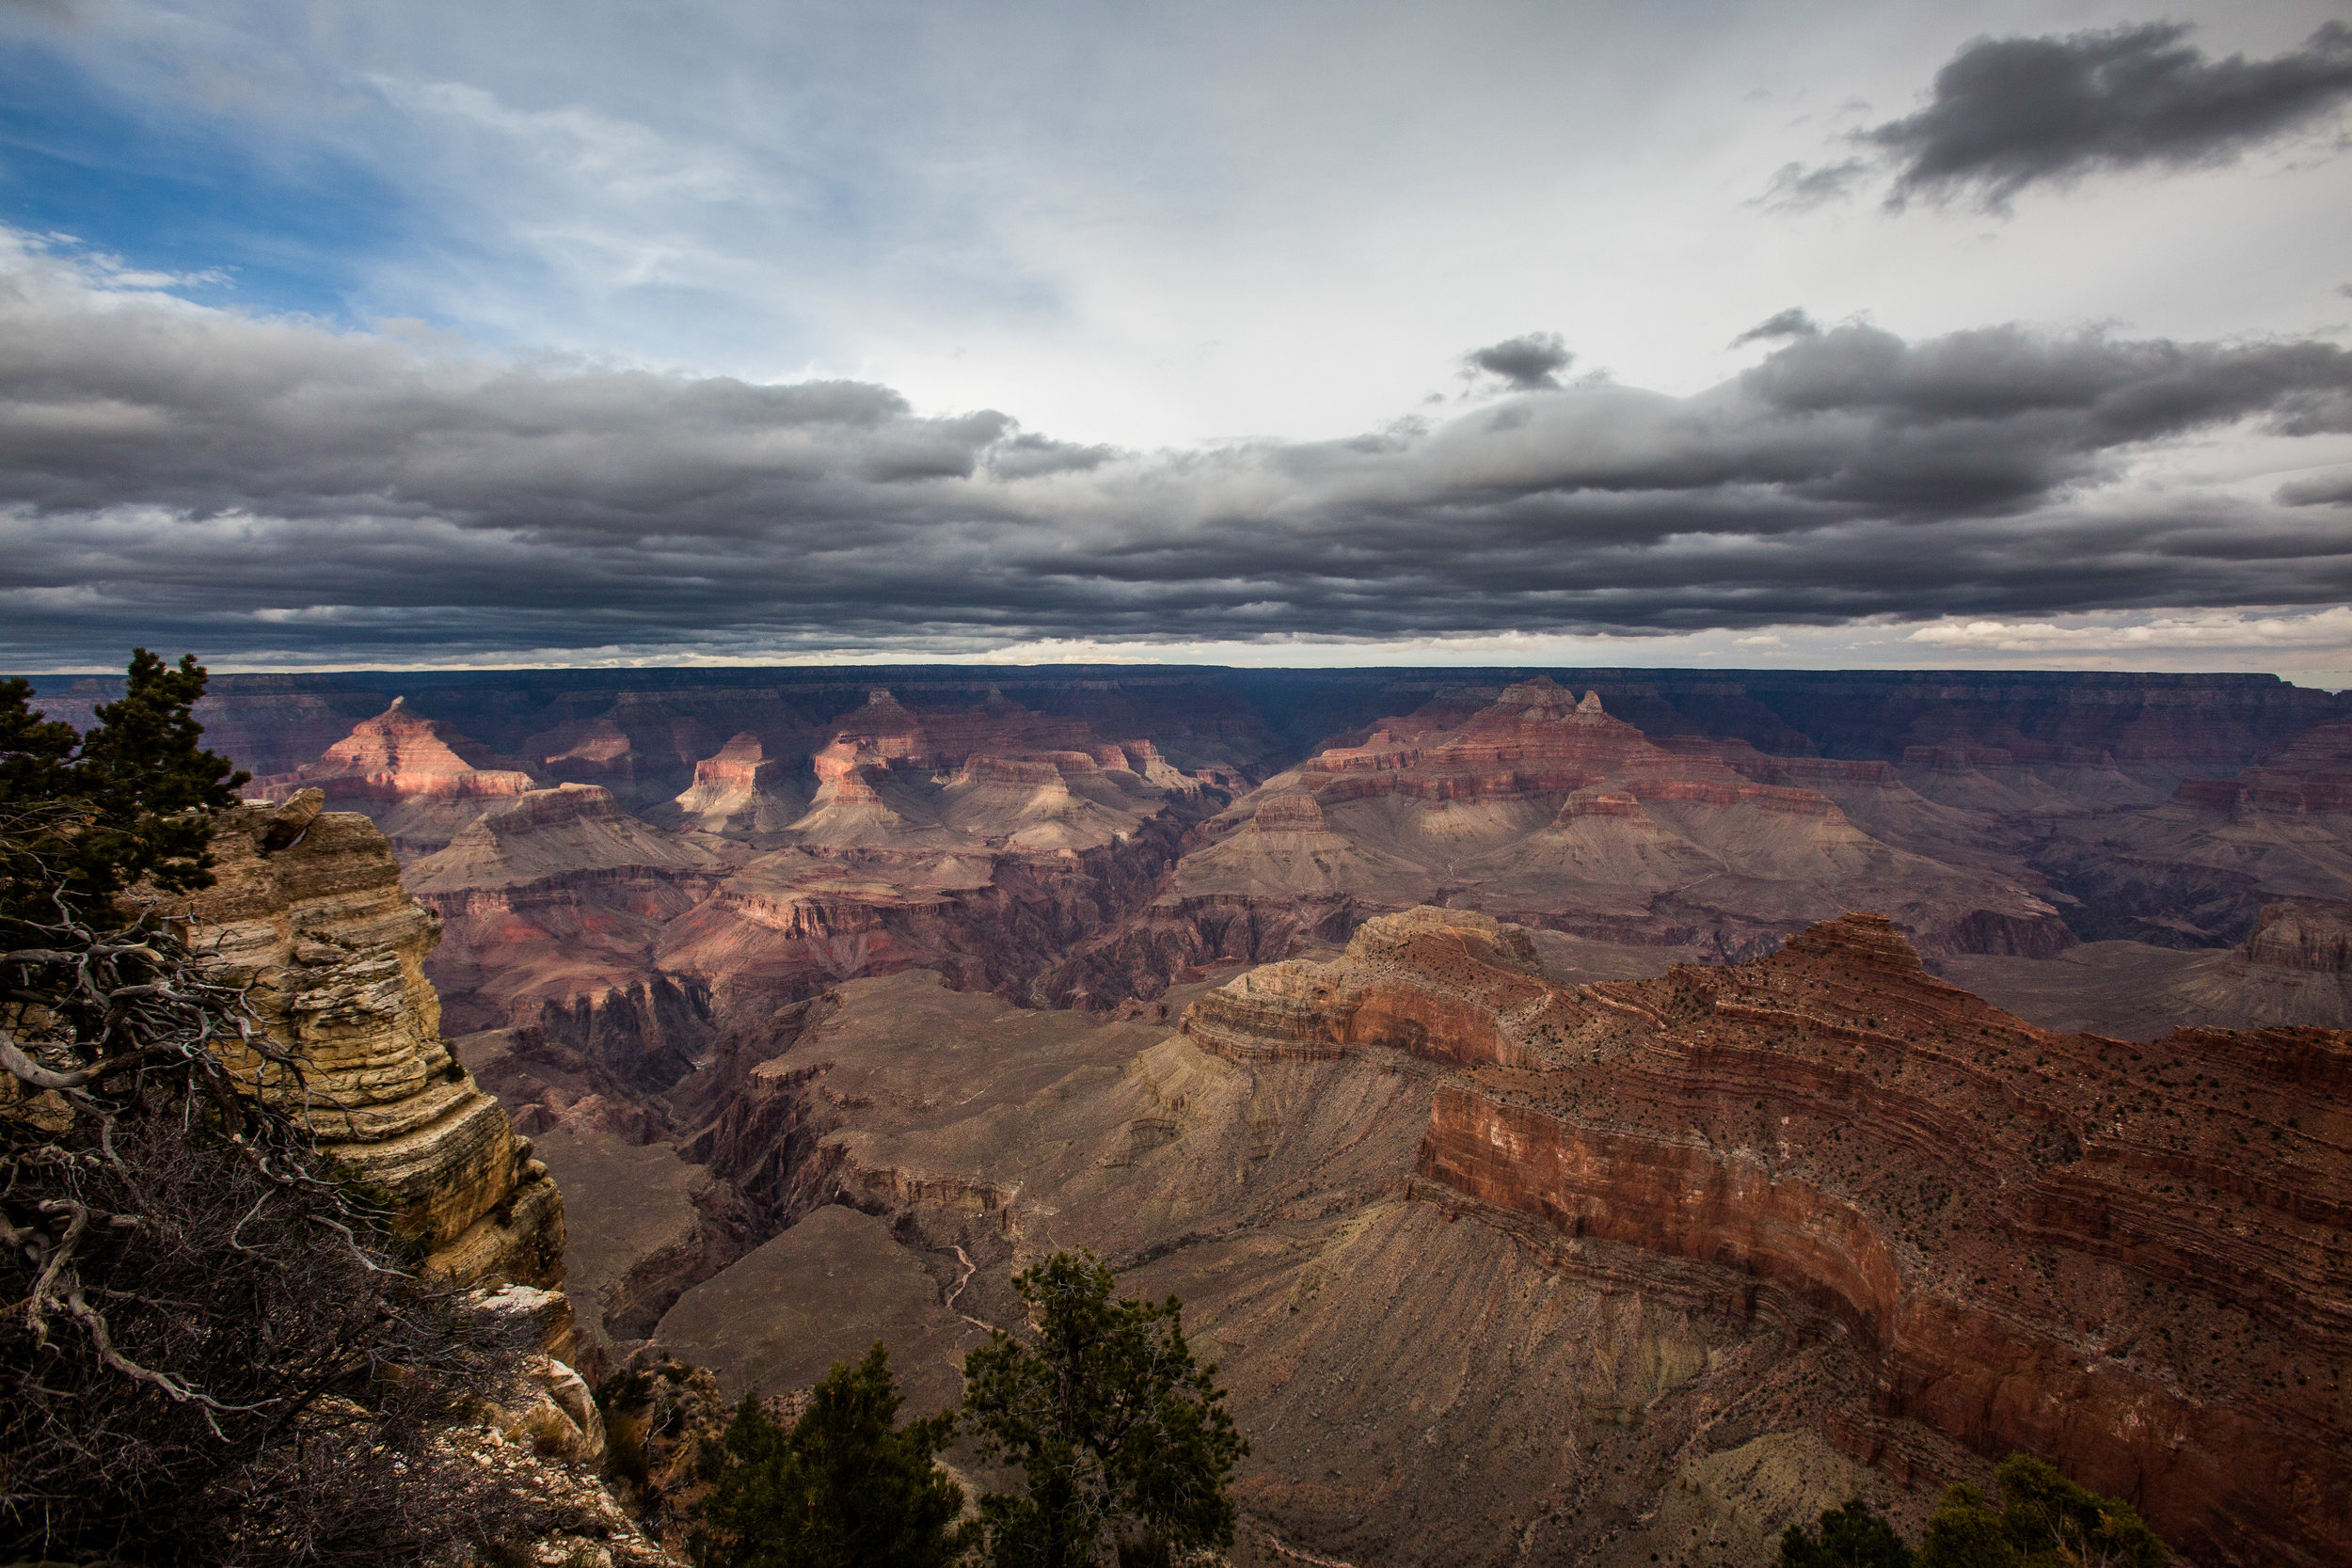 nicole-daacke-photography-must-see-national-parks-of-the-united-states-national-park-landscape-photographer-national-park-elopement-photos-1-2.jpg